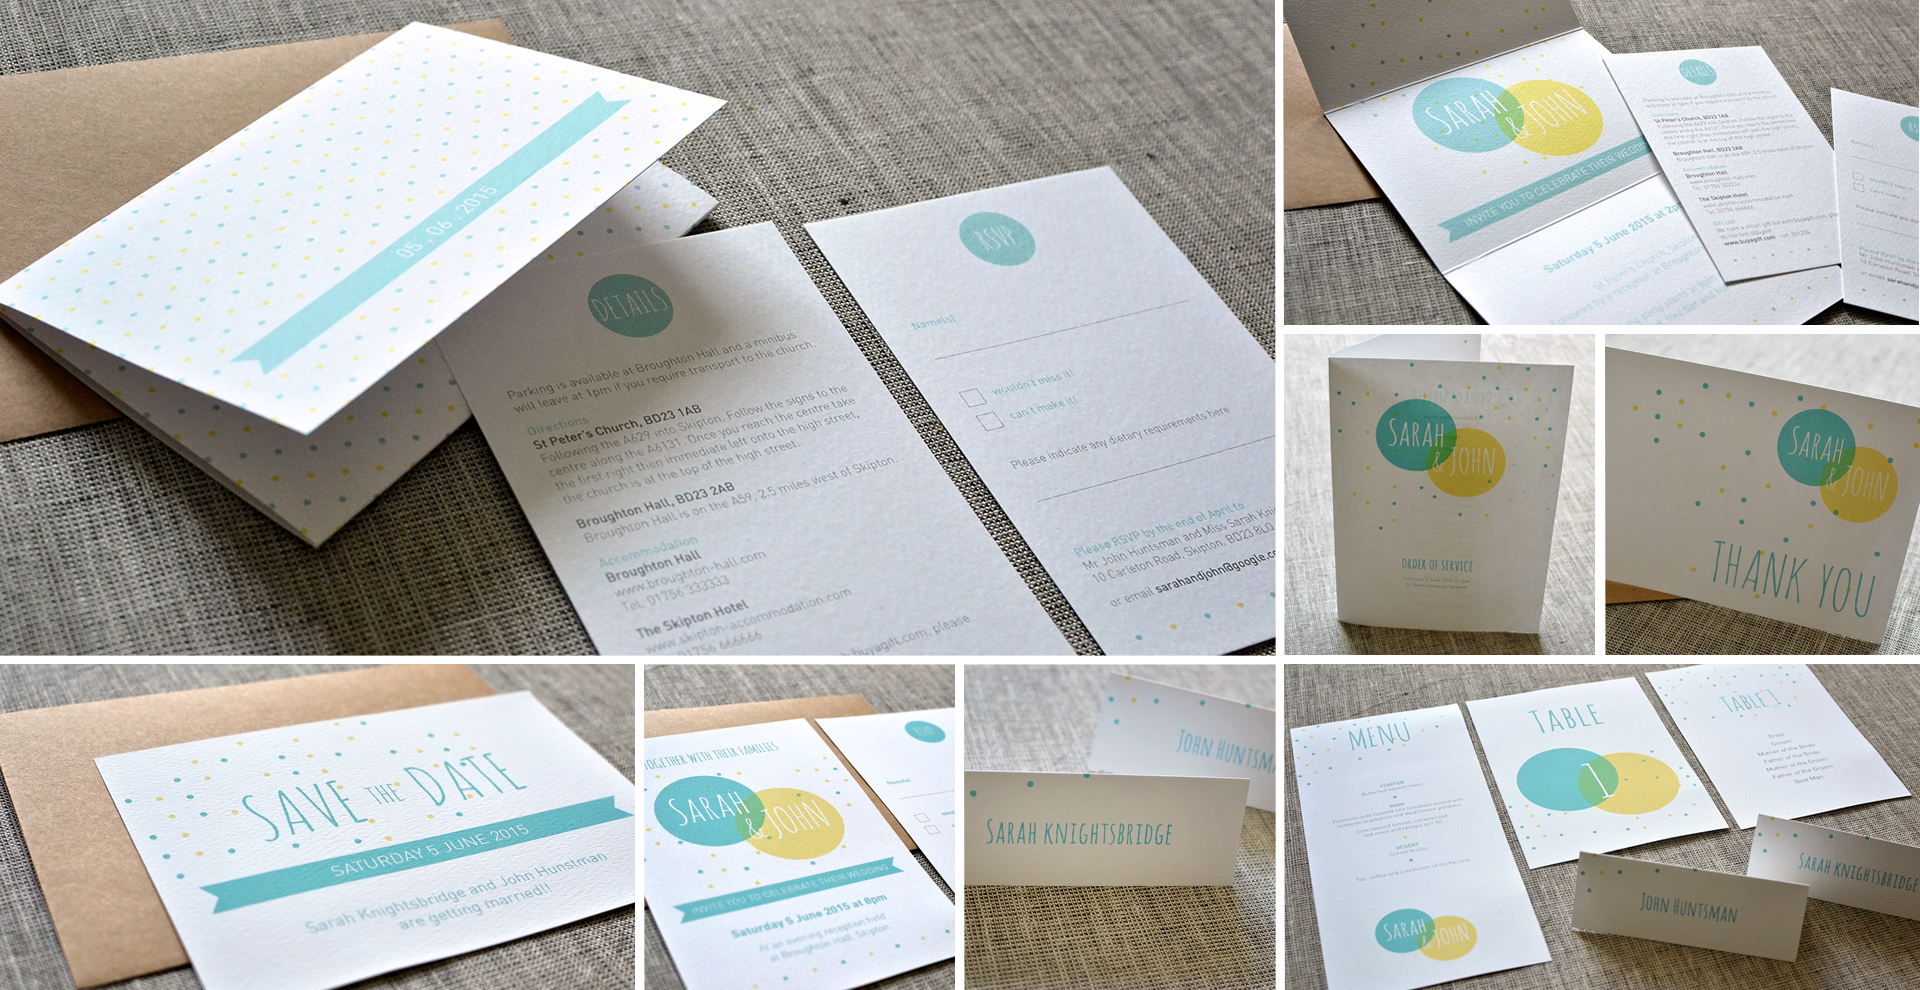 Spotty wedding invitation and stationery